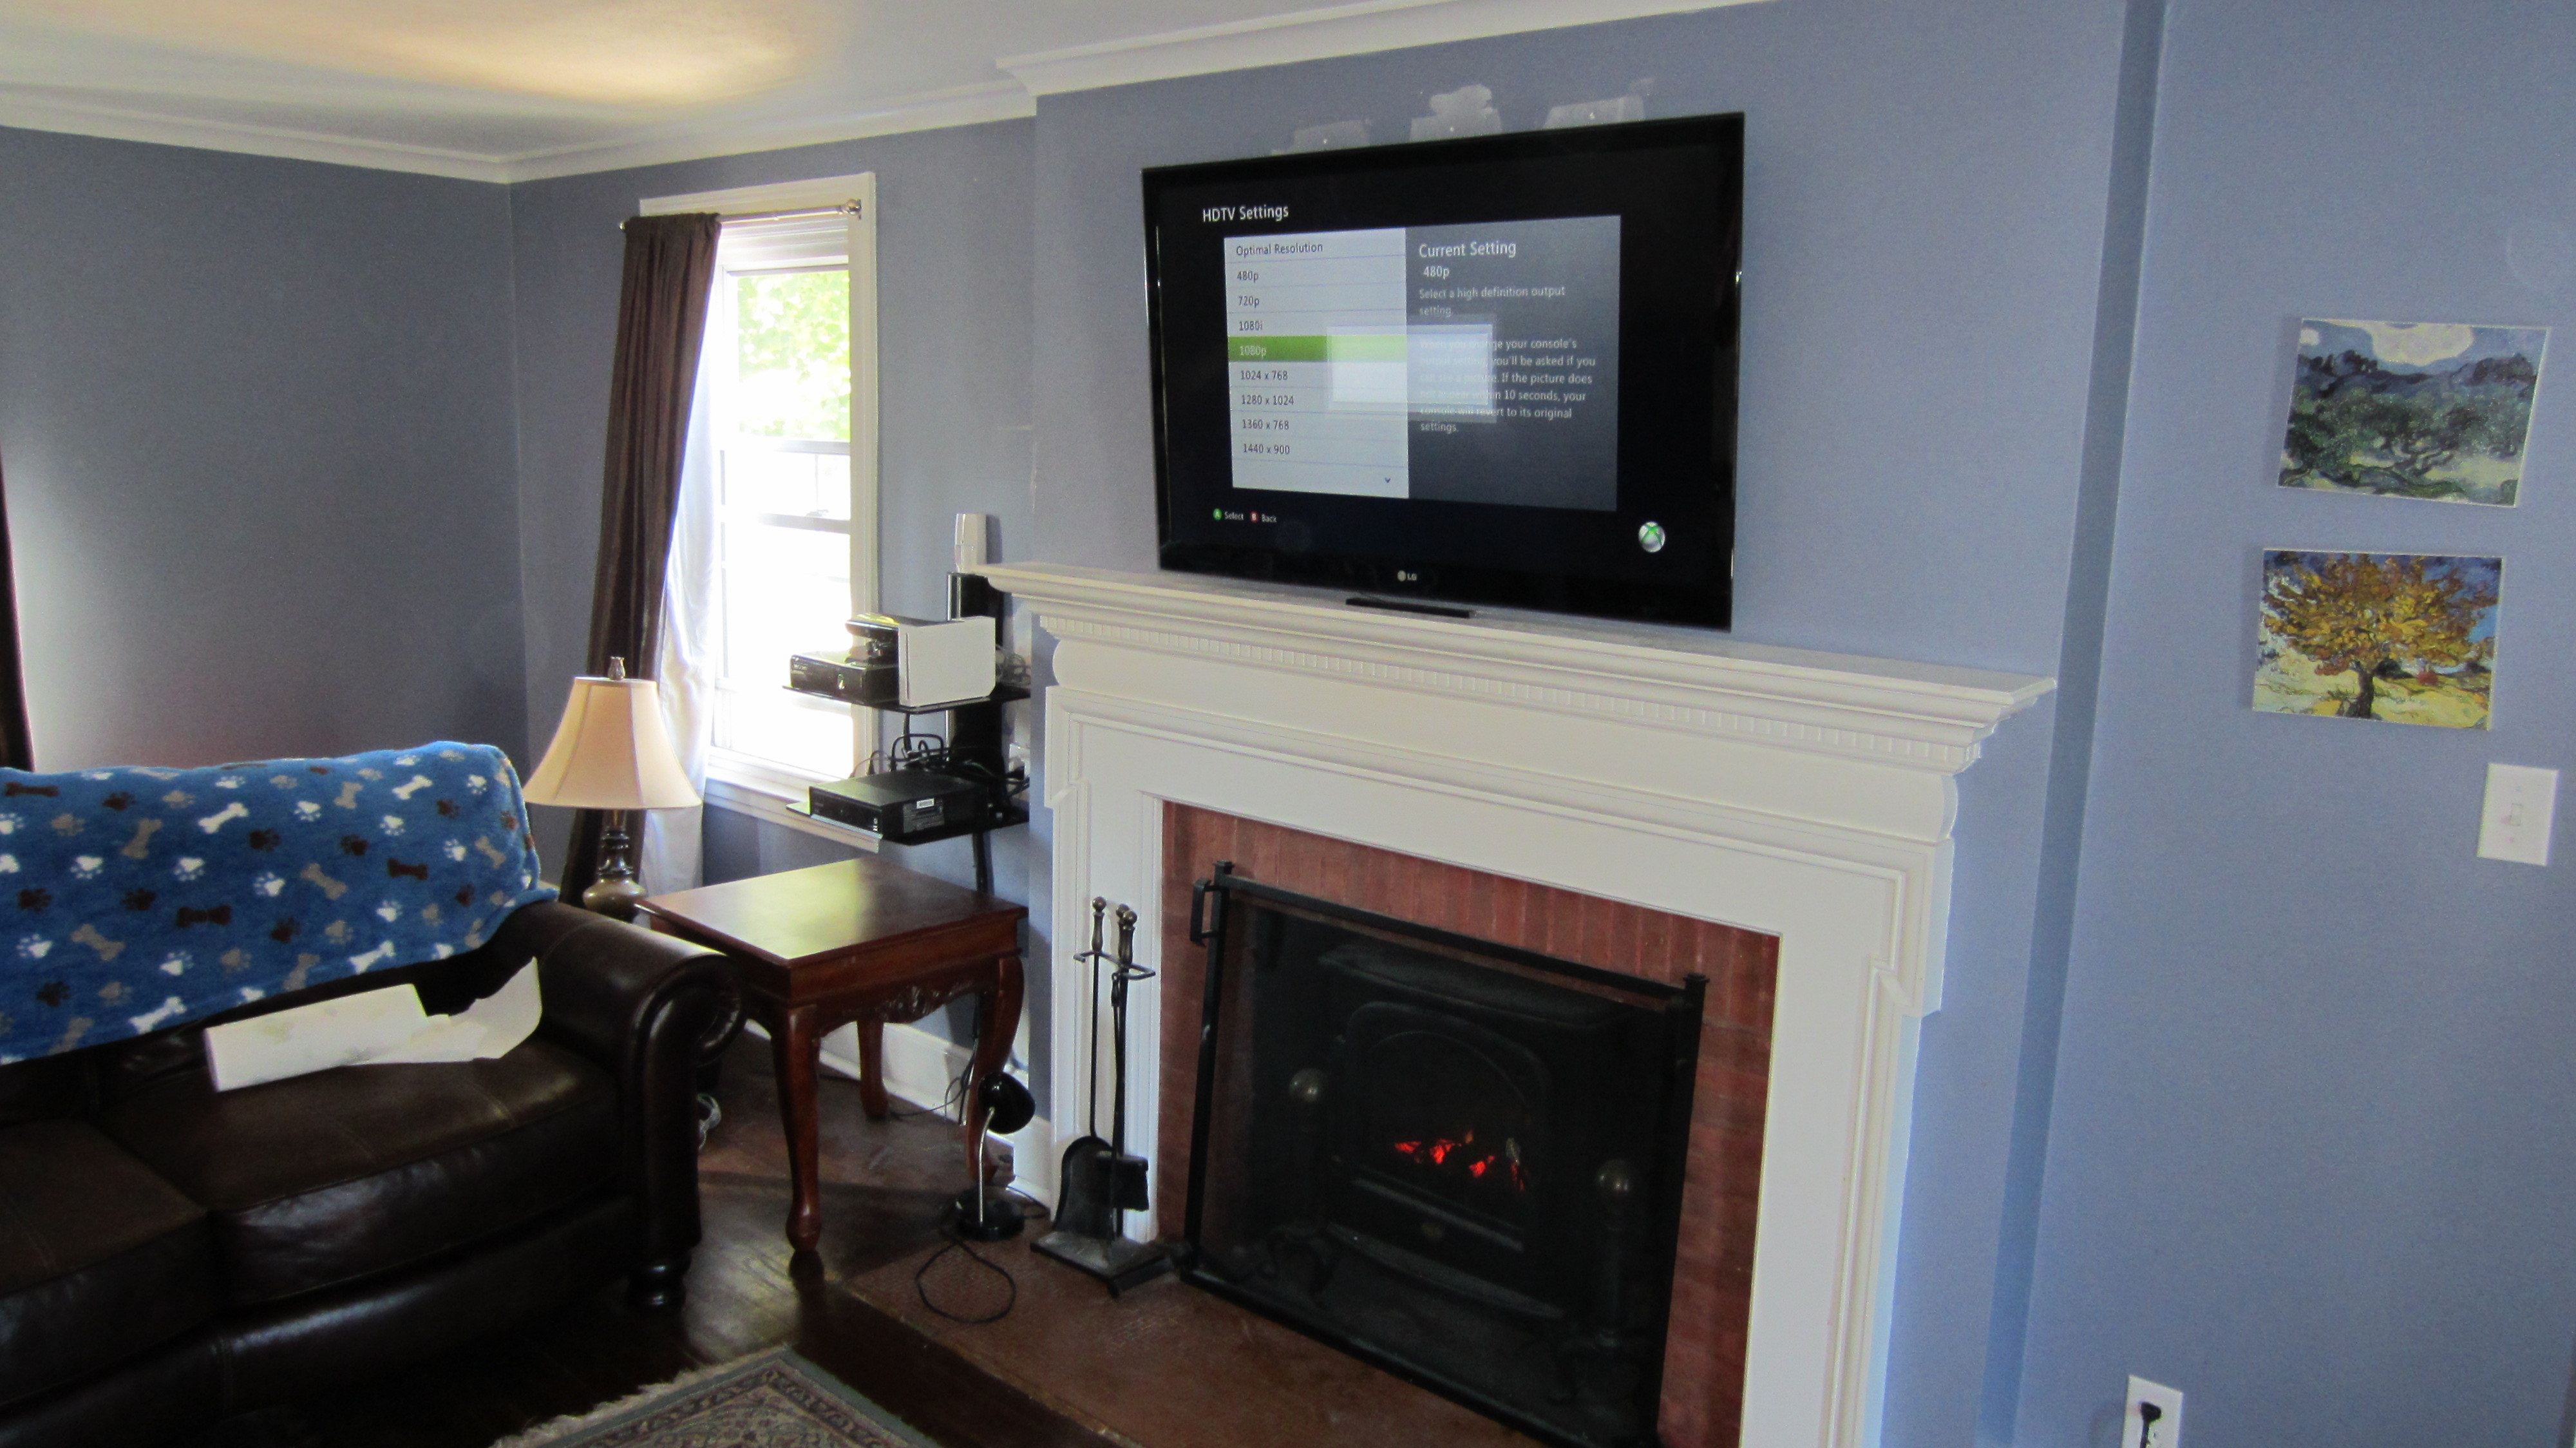 TV over fireplace with wires concealed to ps3, wii and HD cable box